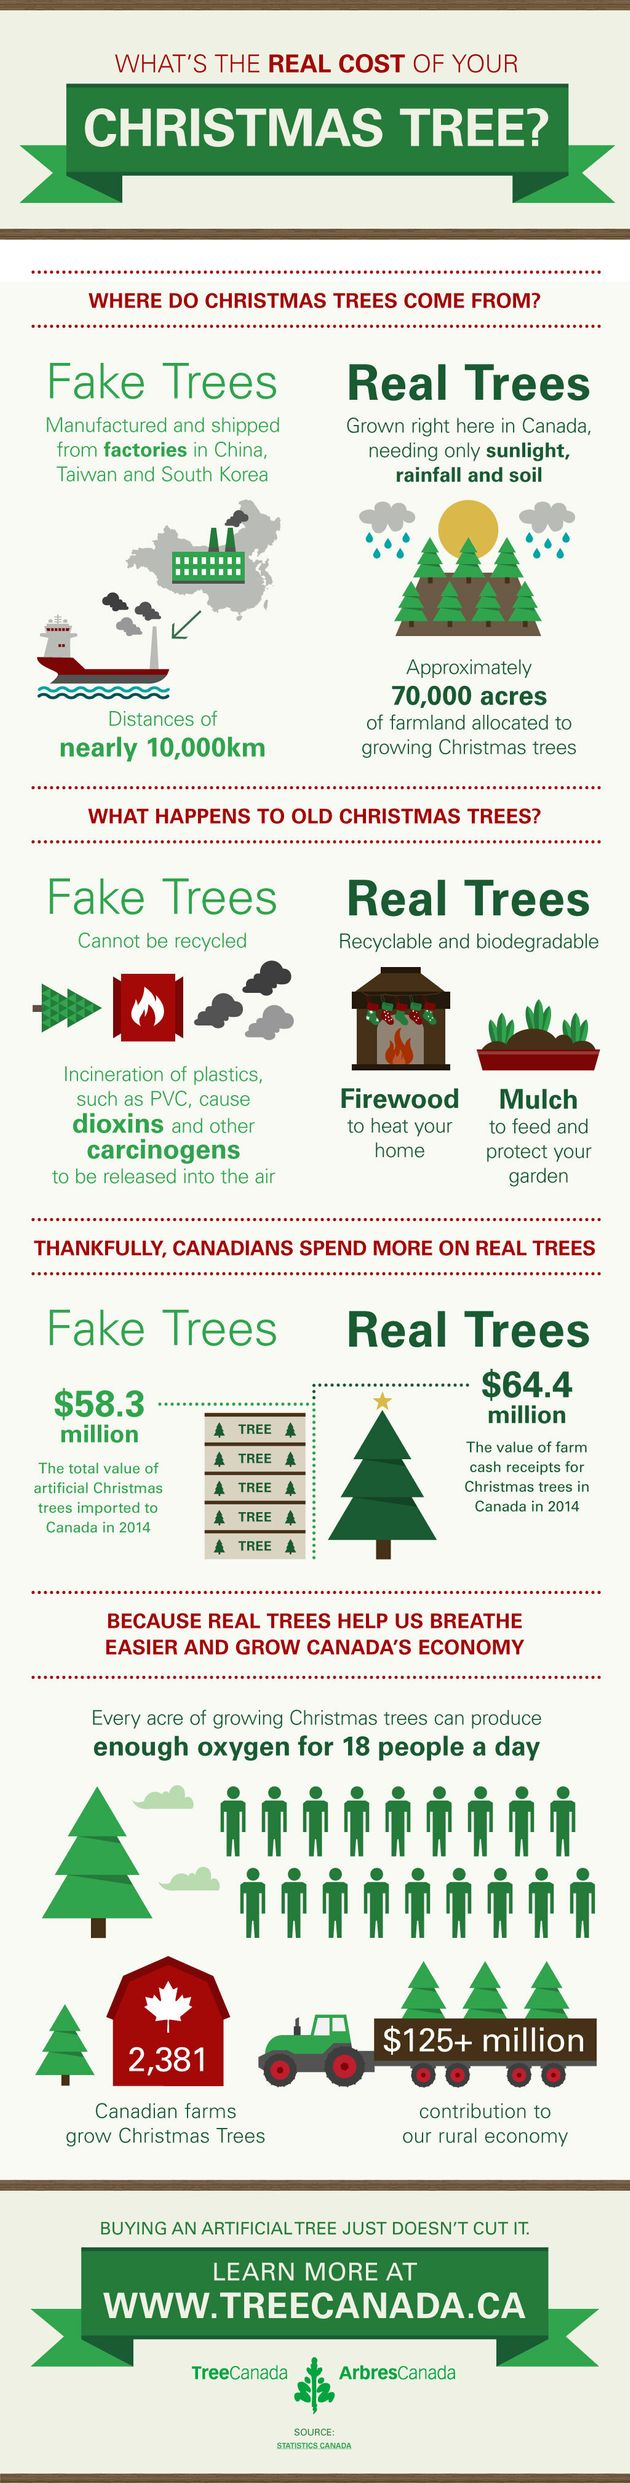 Real Christmas Trees Help Keep Canada's Economy